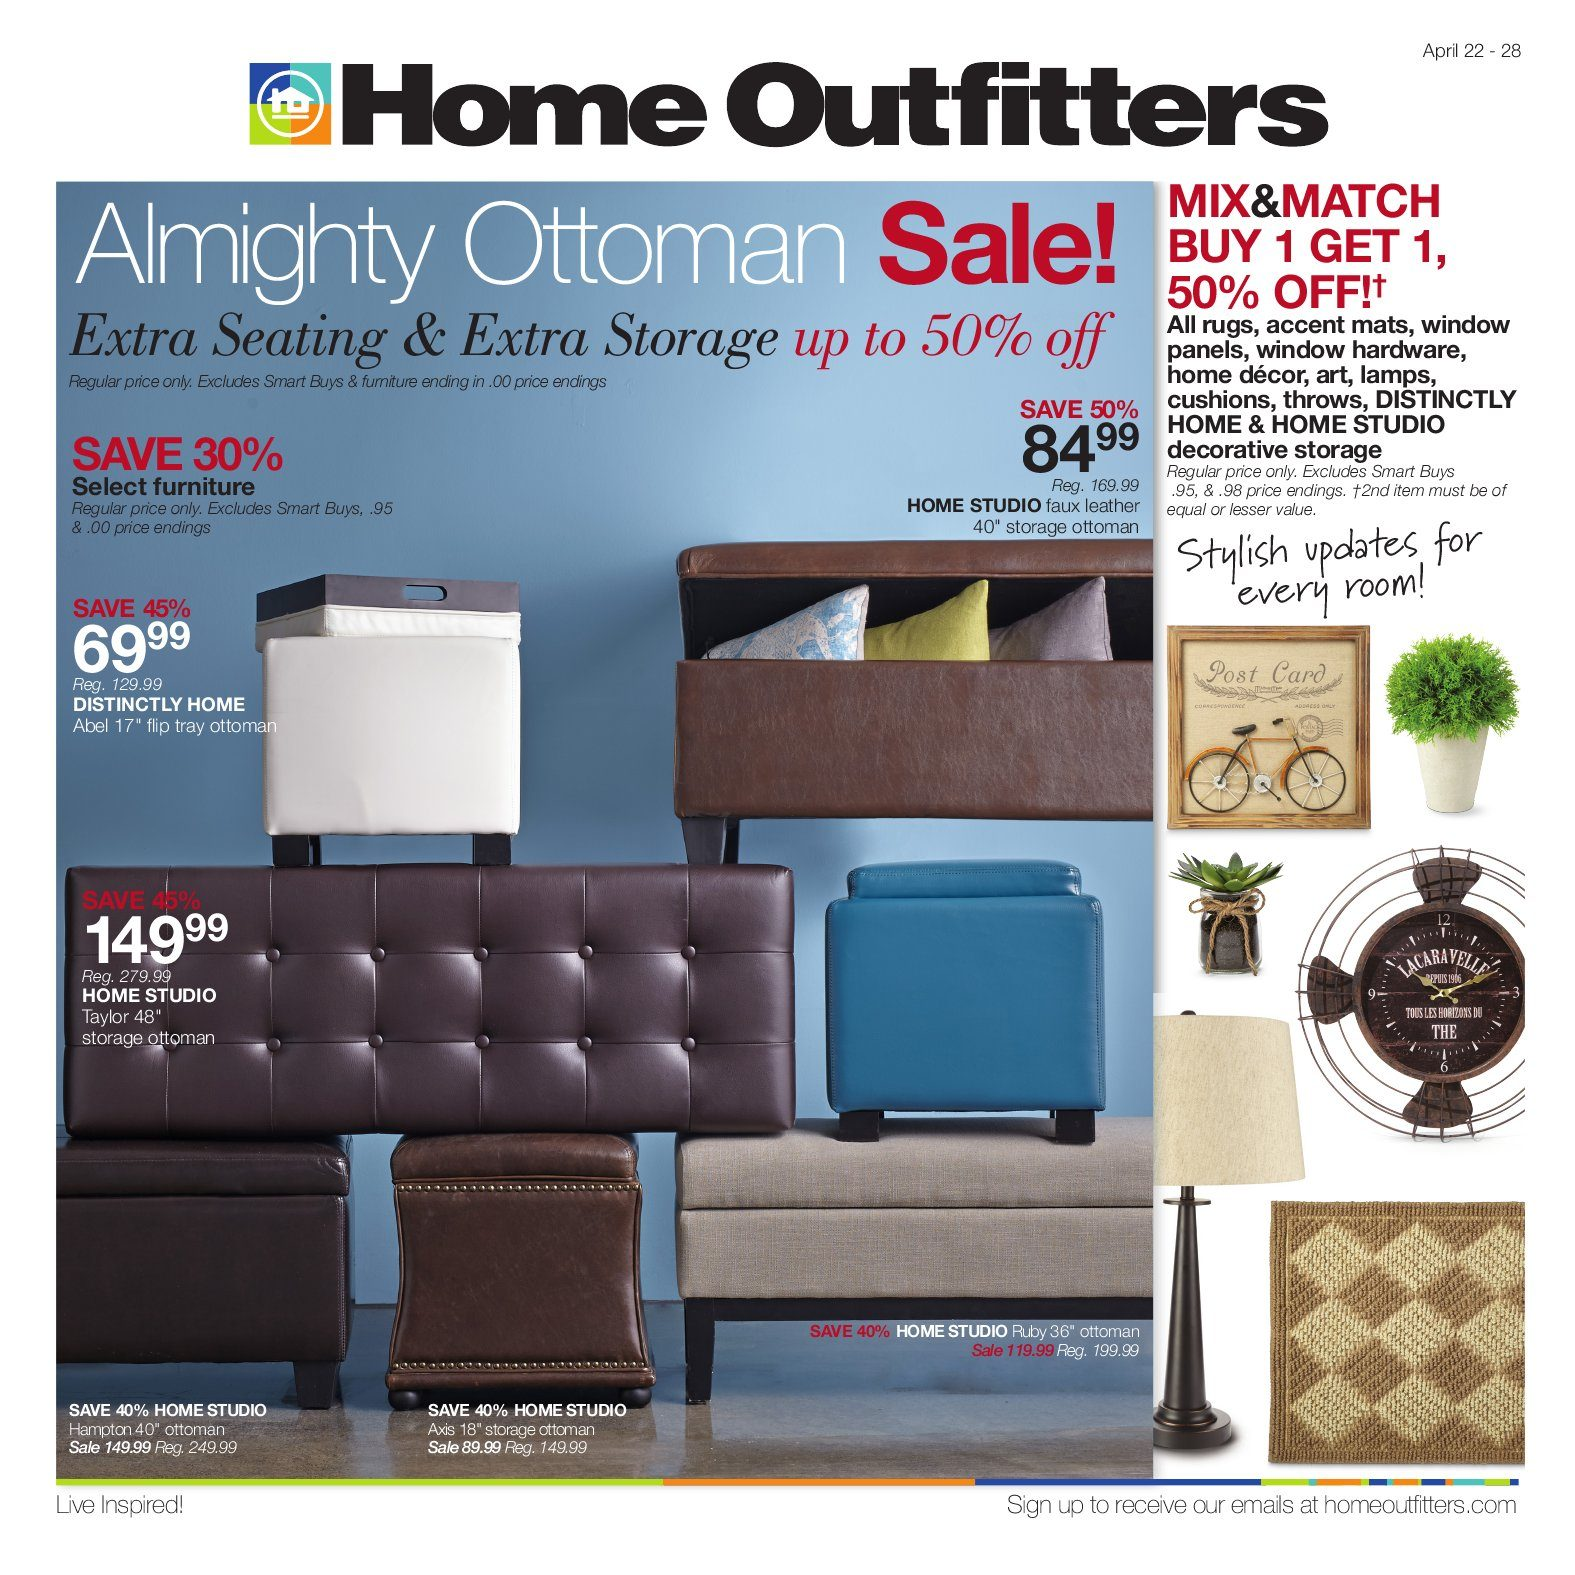 Home Outfitters Weekly Flyer   Weekly   Almighty Ottoman Sale!   Apr 22 U2013  28   RedFlagDeals.com